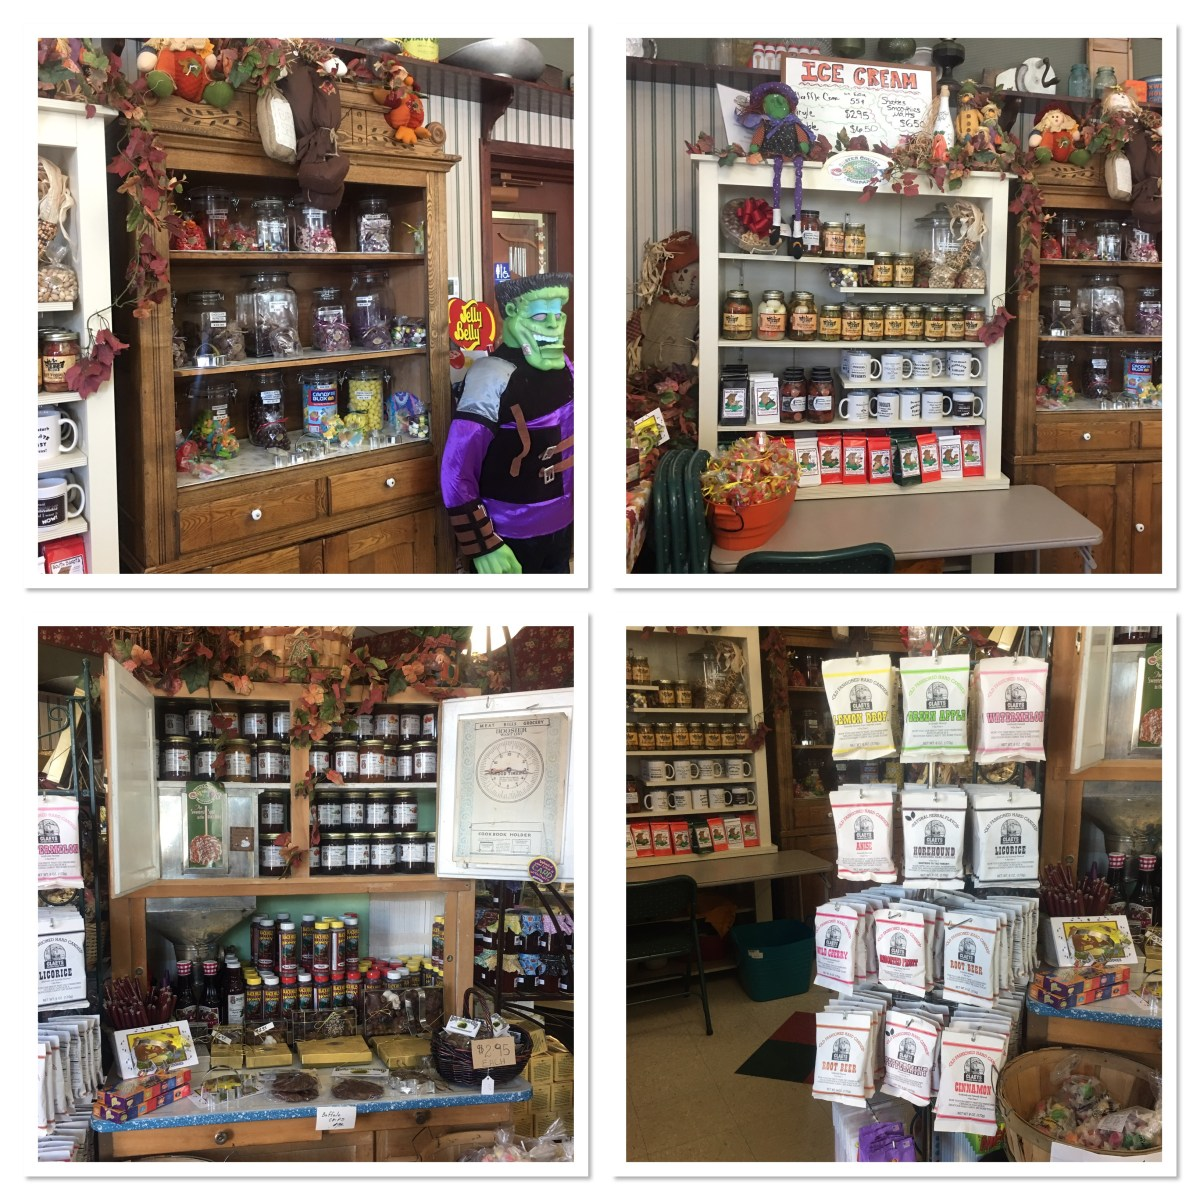 Custer County Candy Store